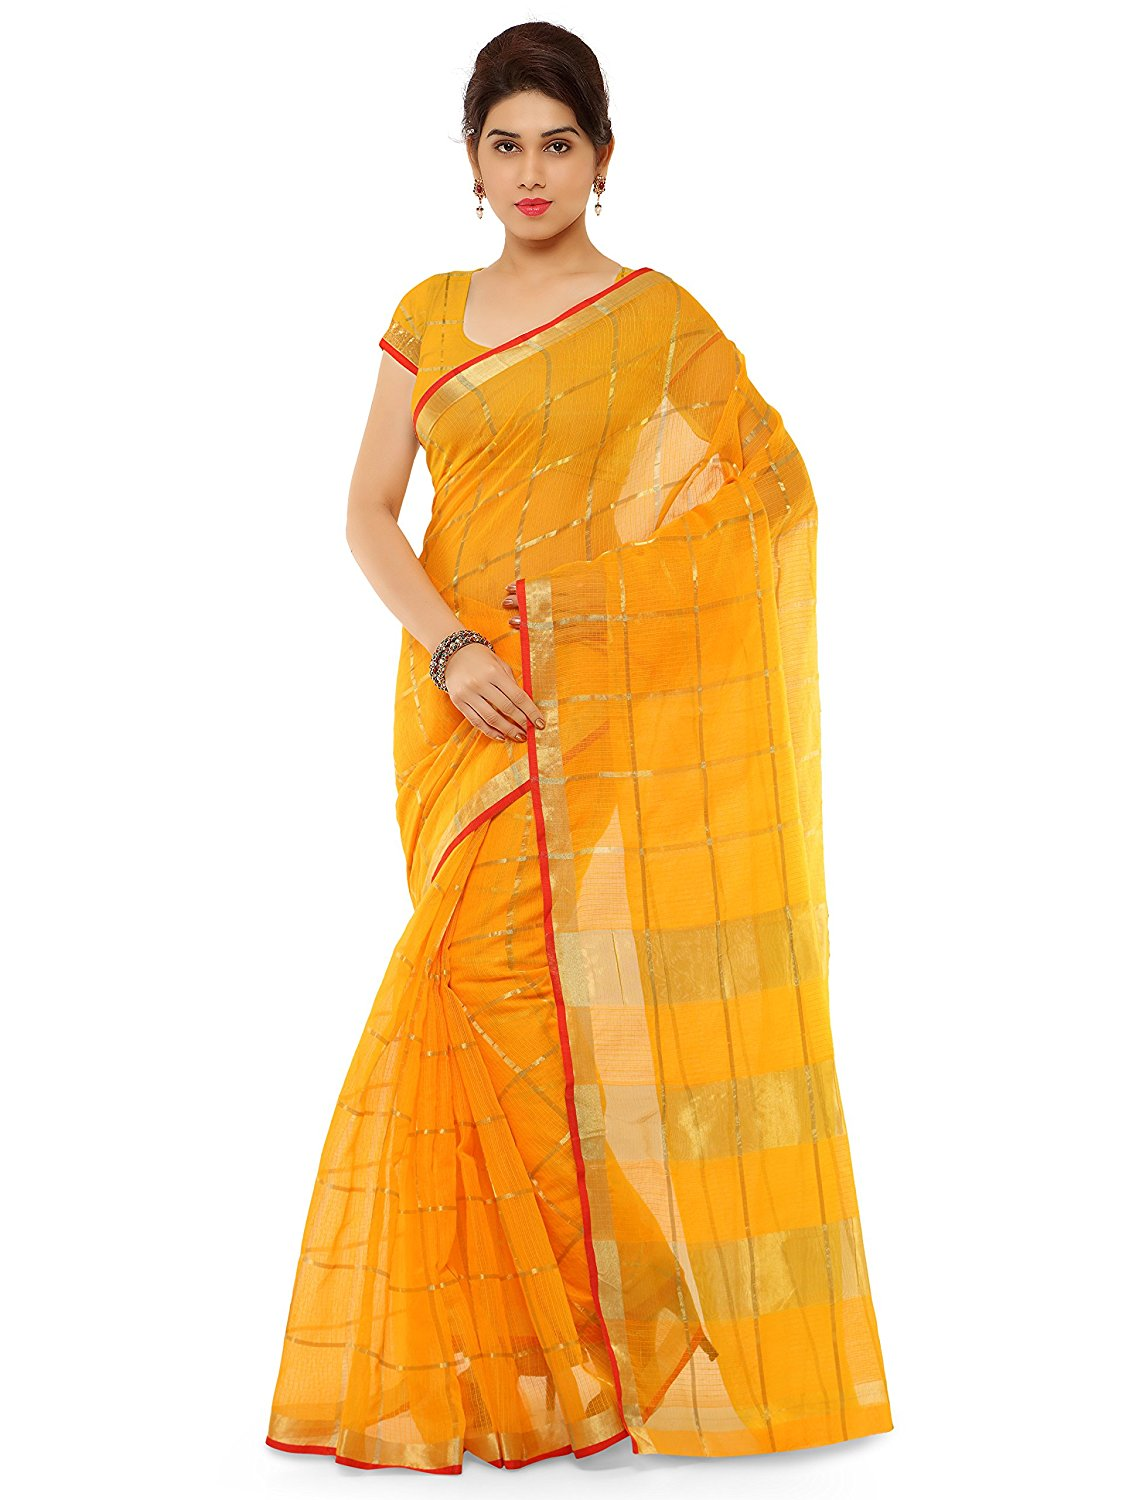 Amazon Offer : Kvsfab Women's Cotton Silk Saree,Yellow at Rs.539